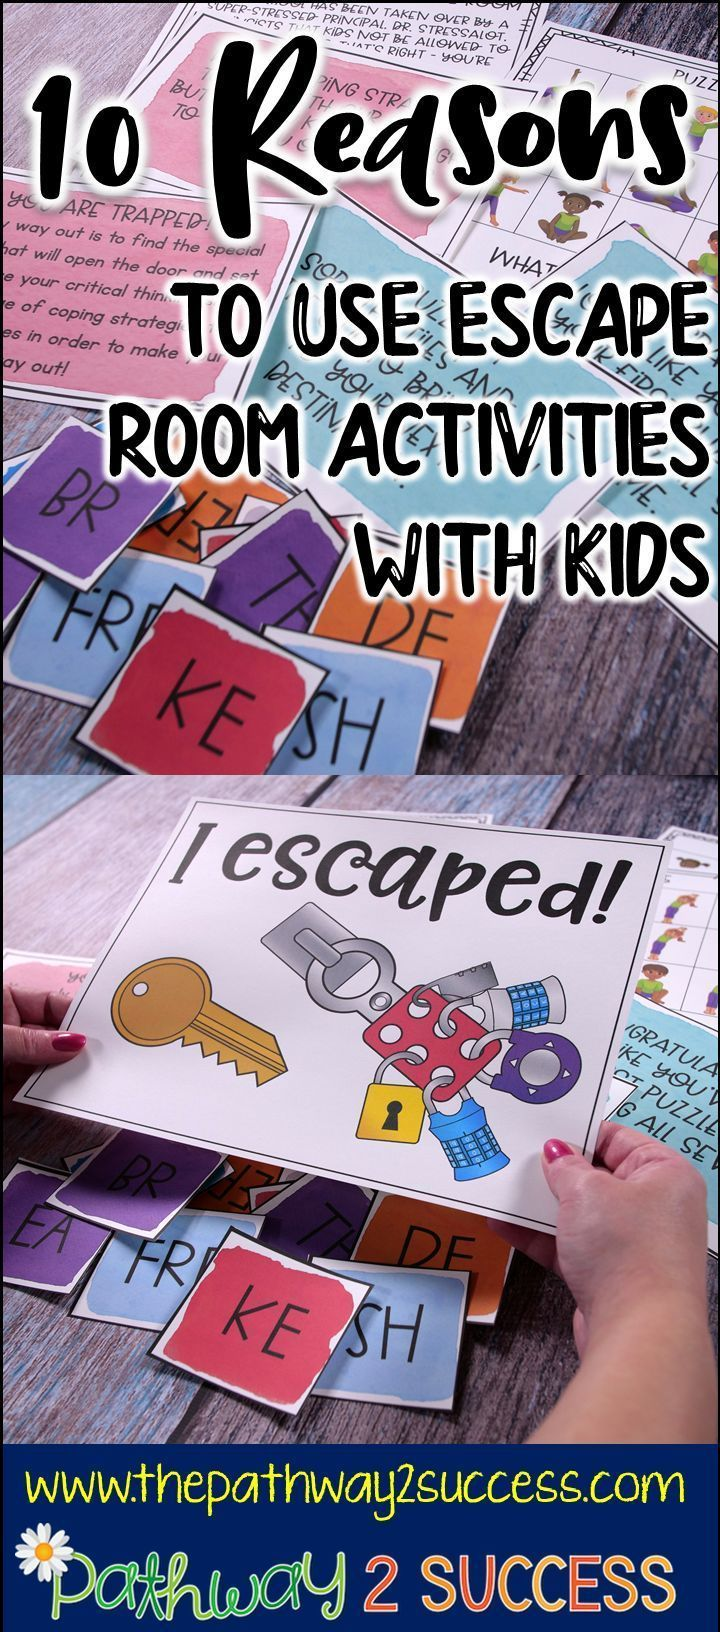 Use escape room activities build team work skills, increase perseverance, encourage critical thinking and much more! Read up here at this blog post to find out why you should be using escape room activities with your kids.